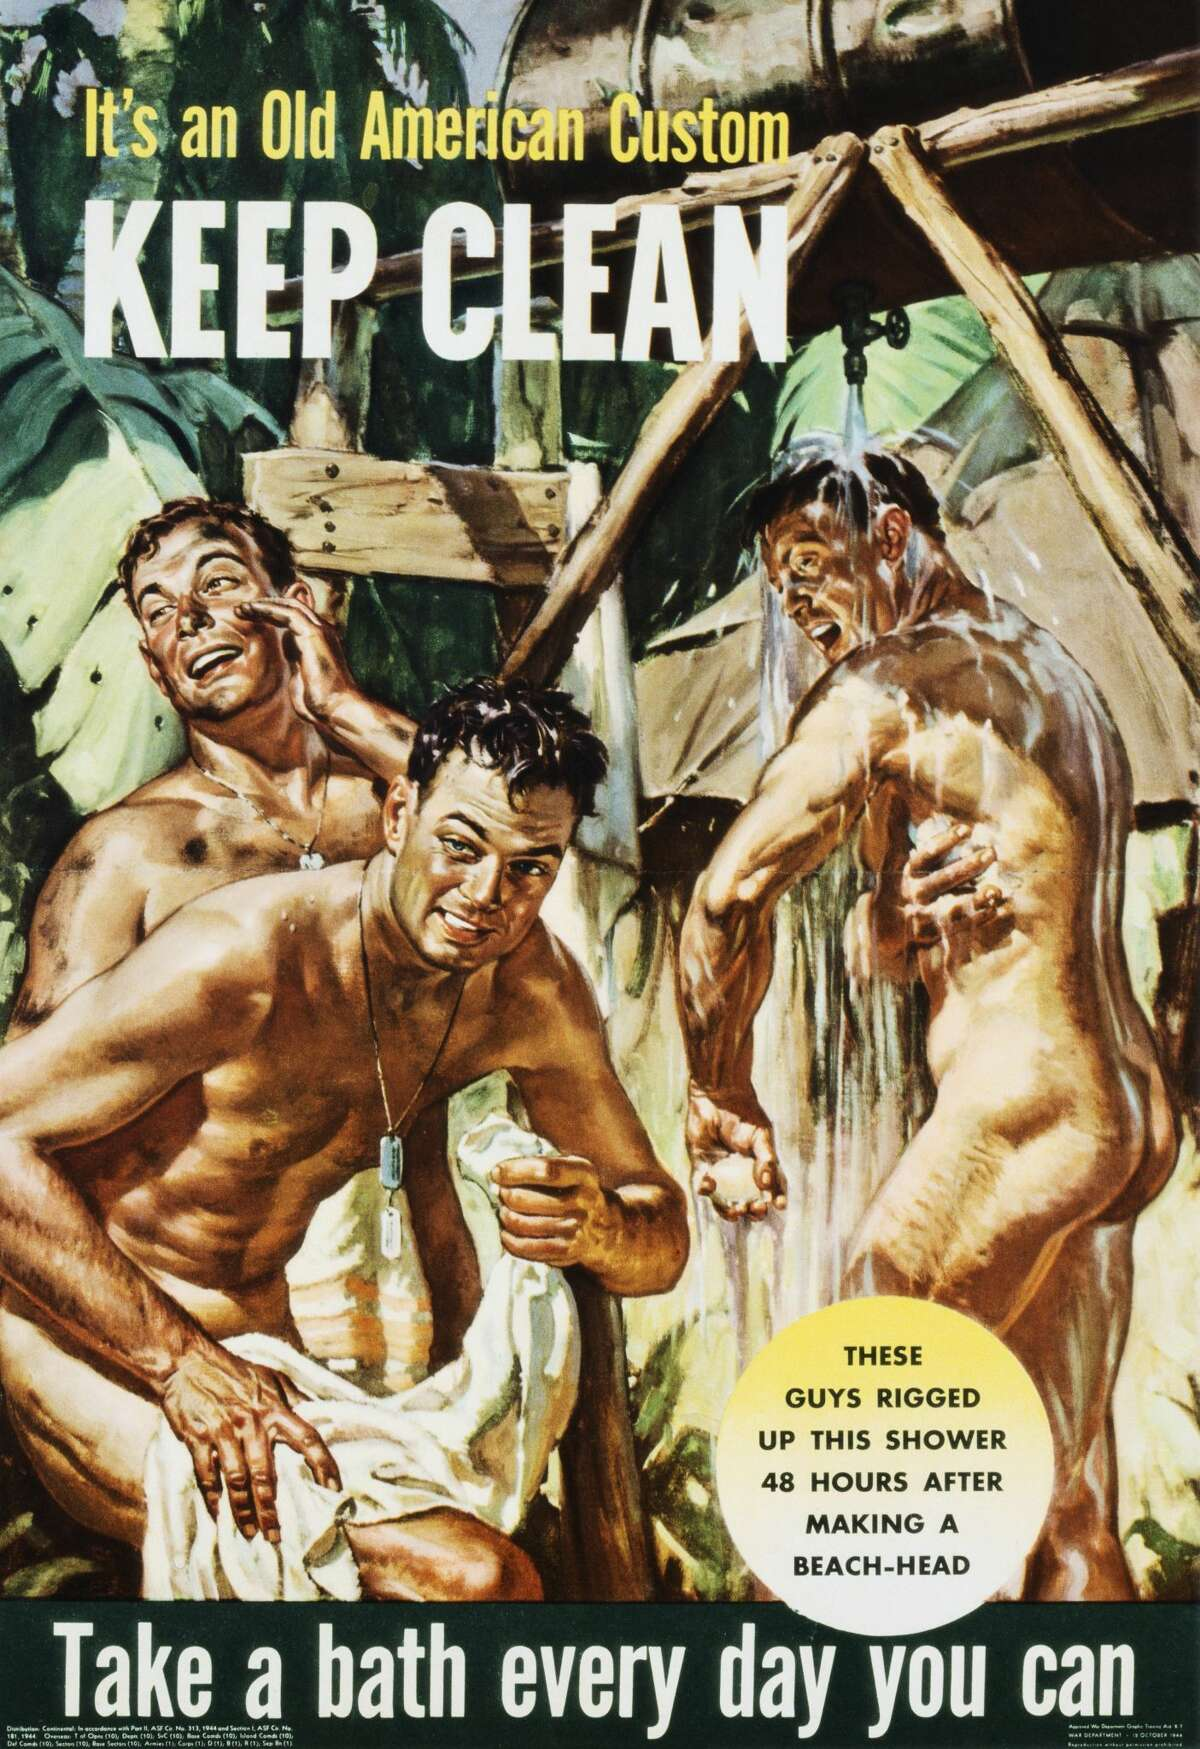 """Soldiers were asked to uphold the """"old American custom"""" of daily showers in this cheeky propaganda poster."""